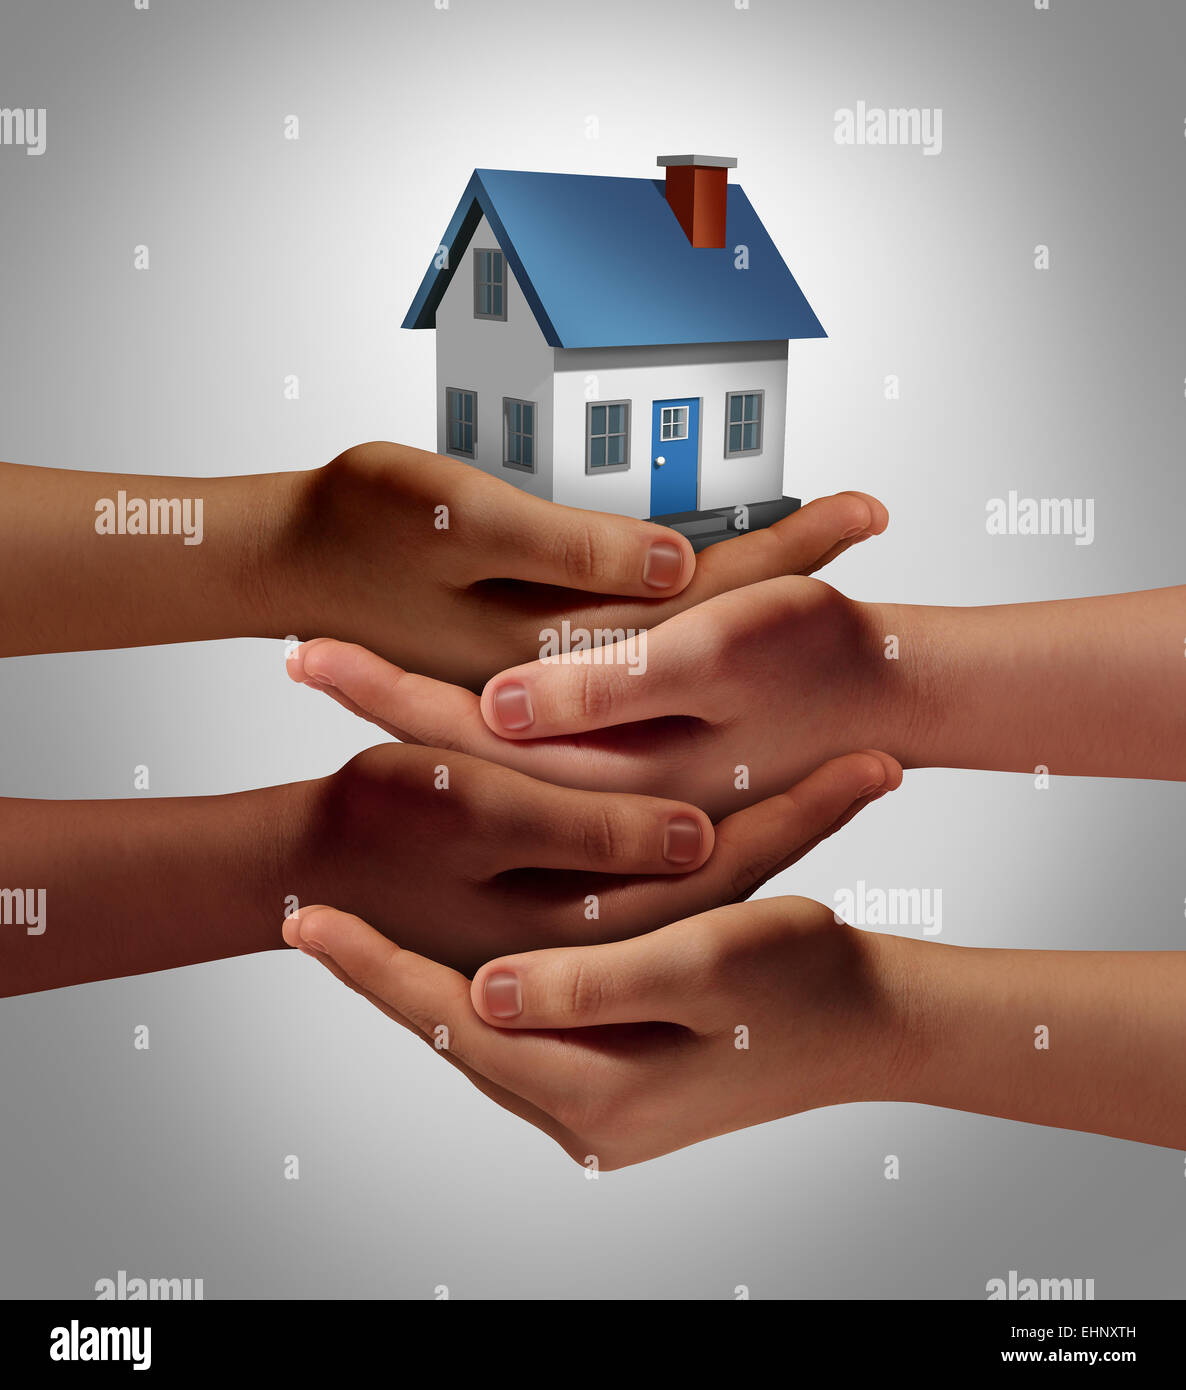 Community housing concept and neighbor support or neighborhood watch symbol as a connected group of diverse hands - Stock Image